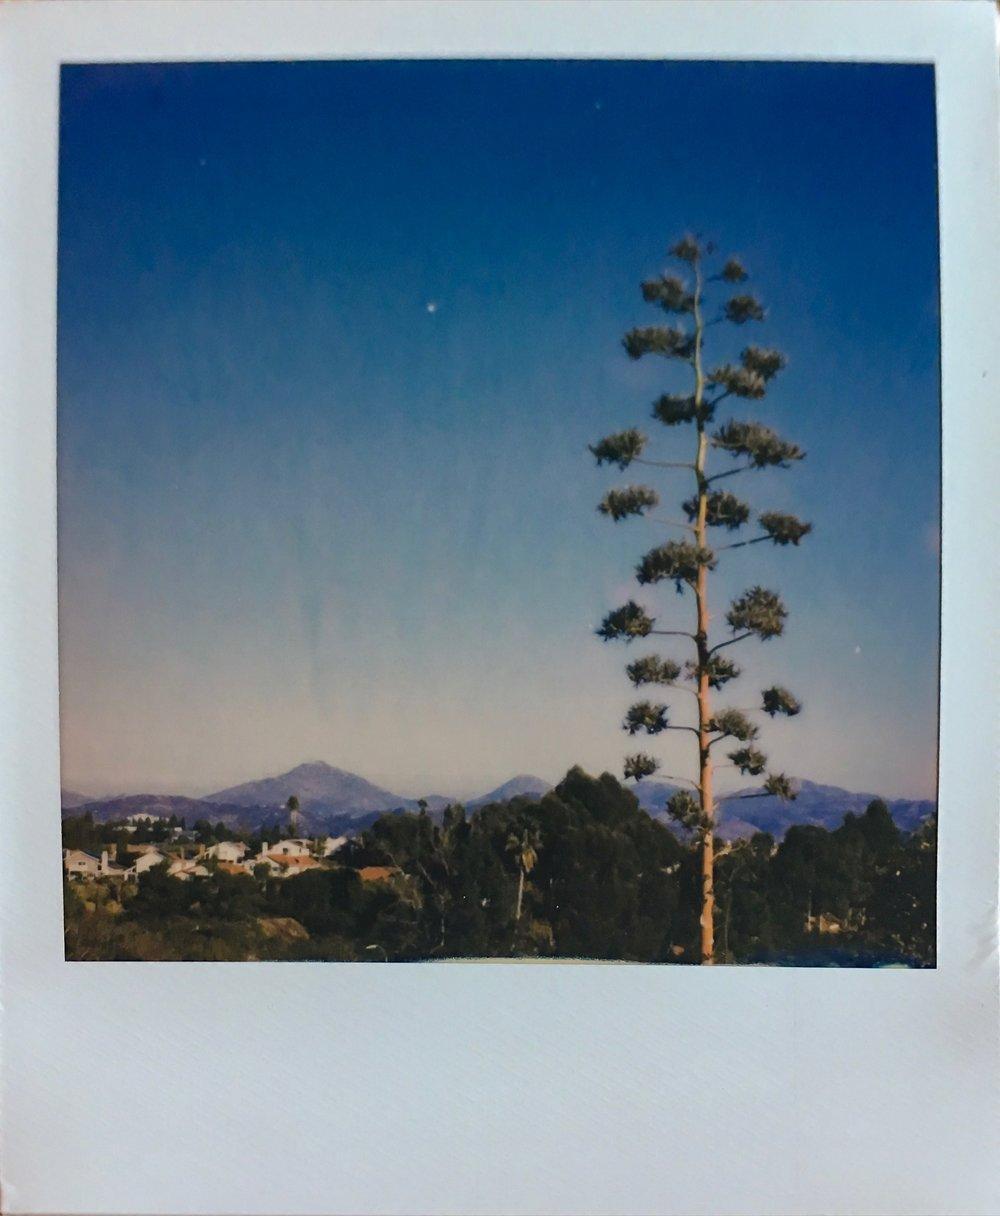 Wandered around Black Mountain park with a couple packs of new Polaroid Originals instant film.